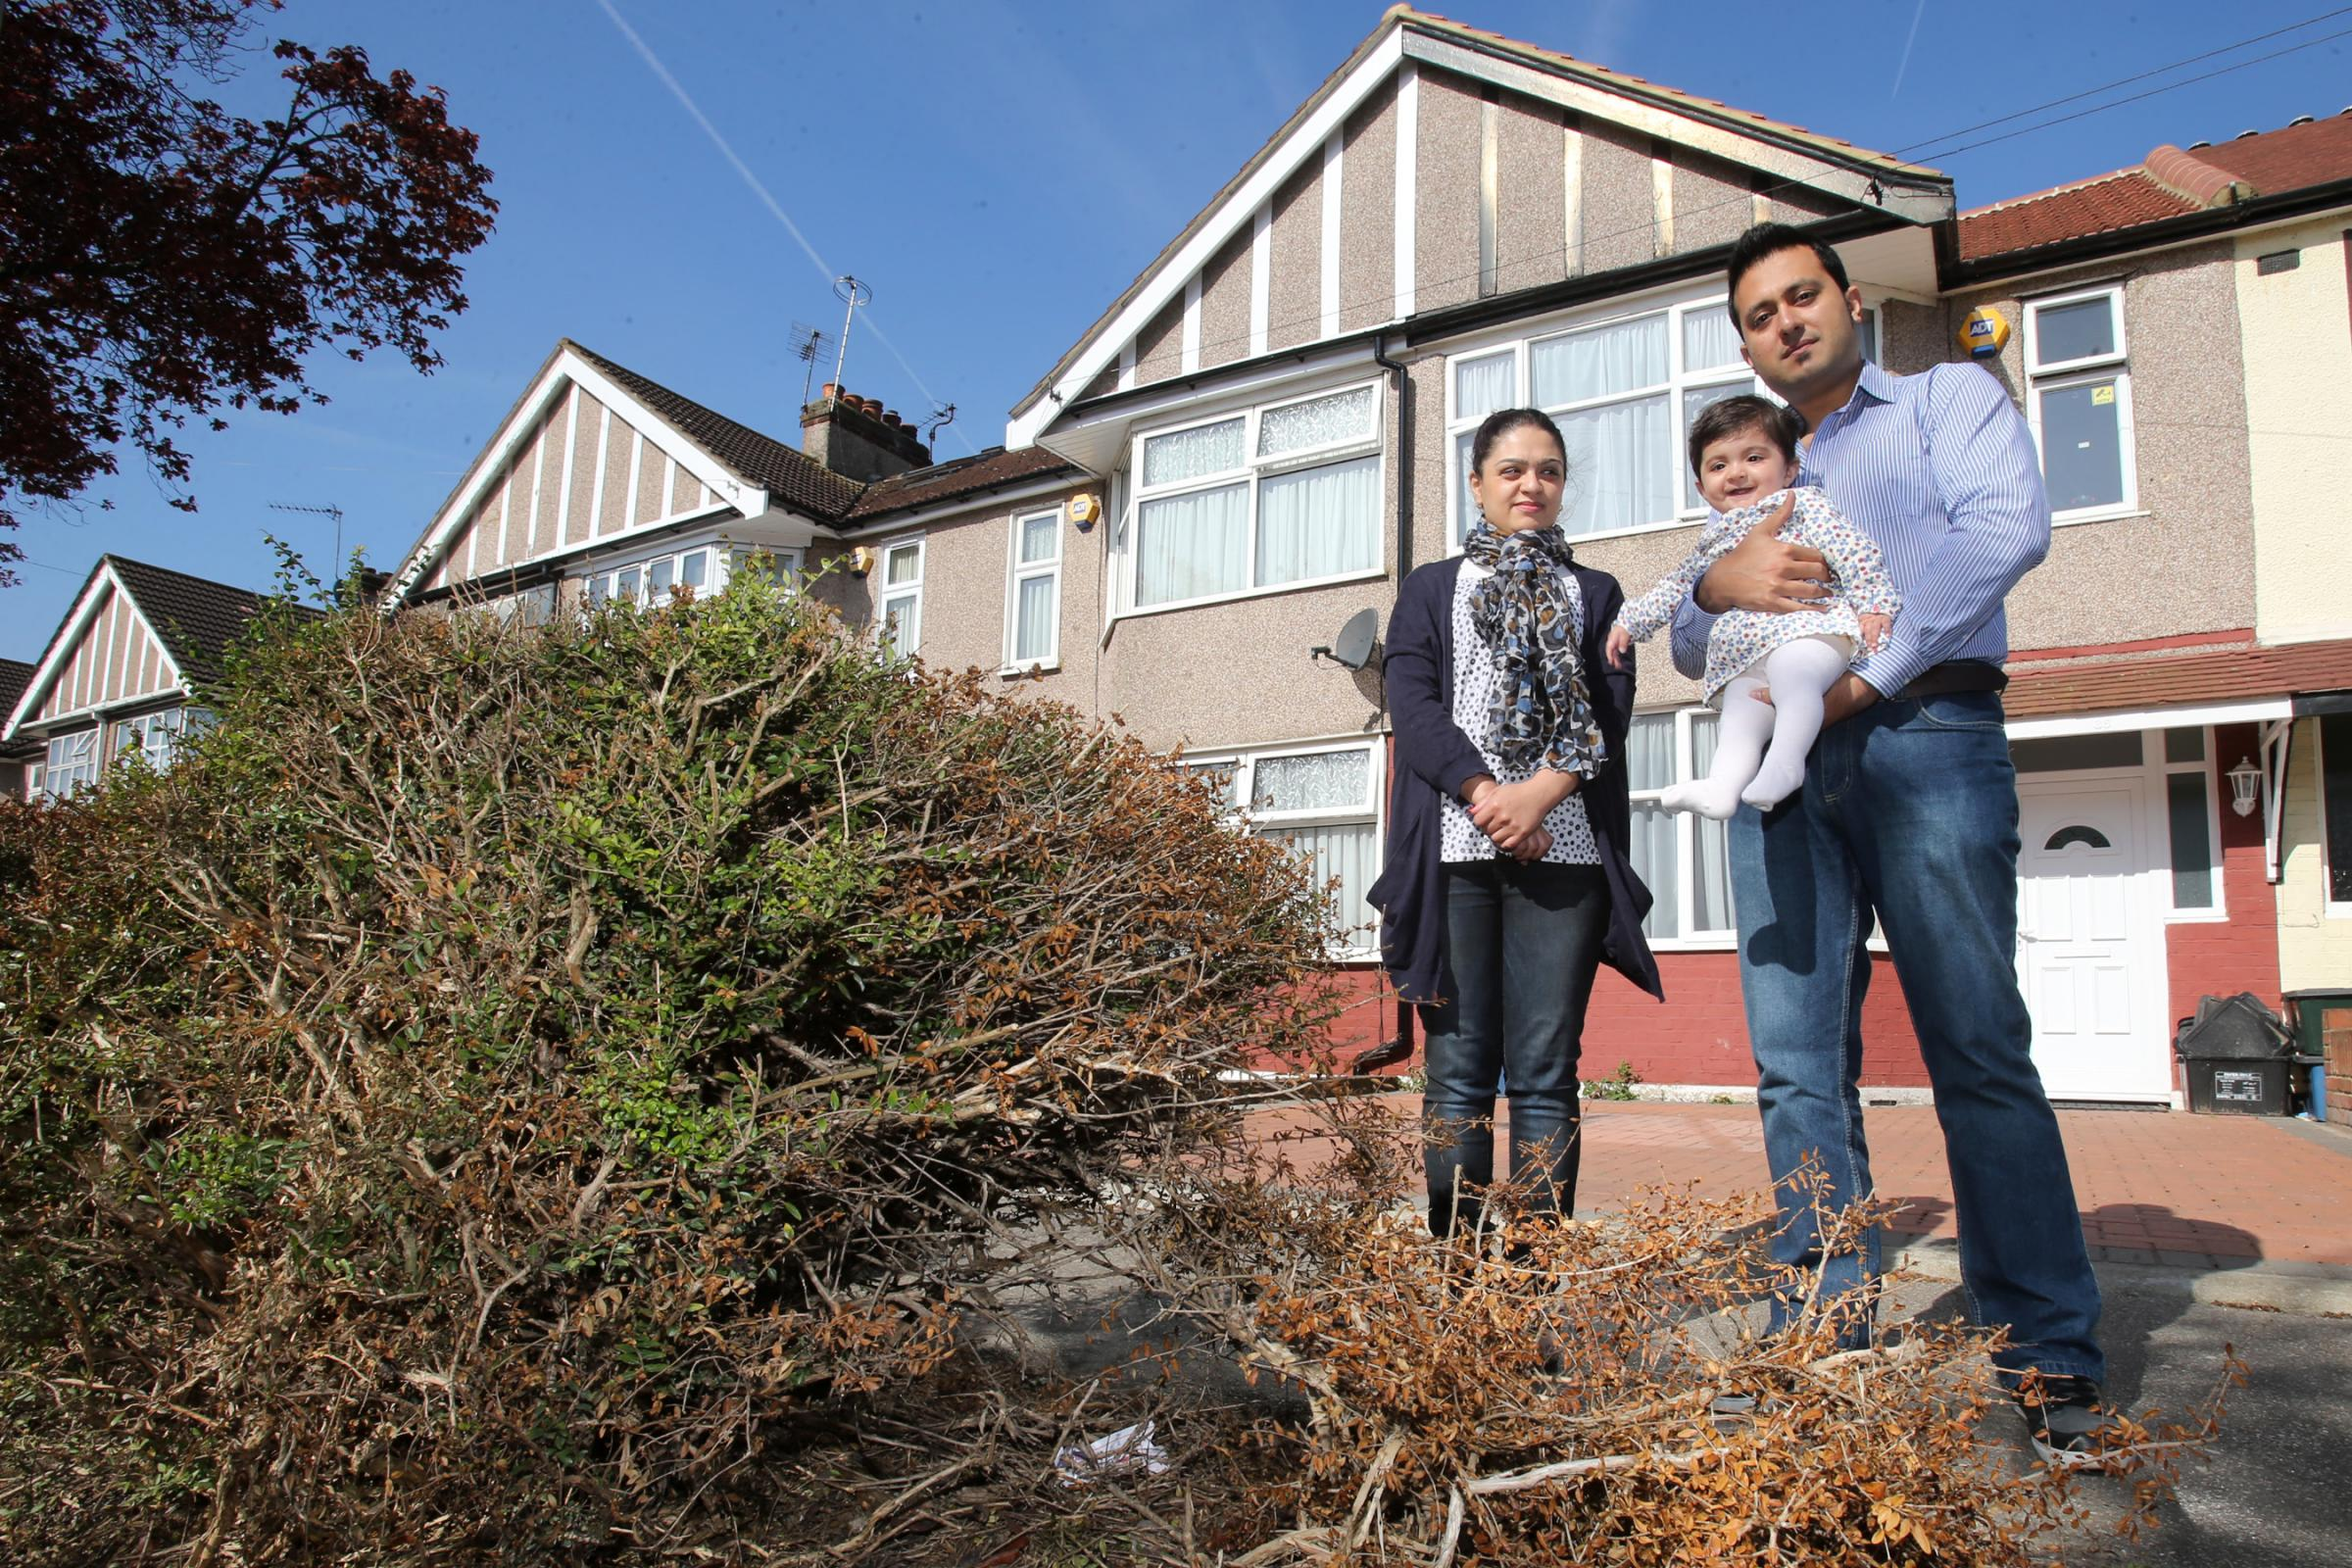 Junaid and Yasmin Muzammal with six-month-old daughter Haya outside their home.